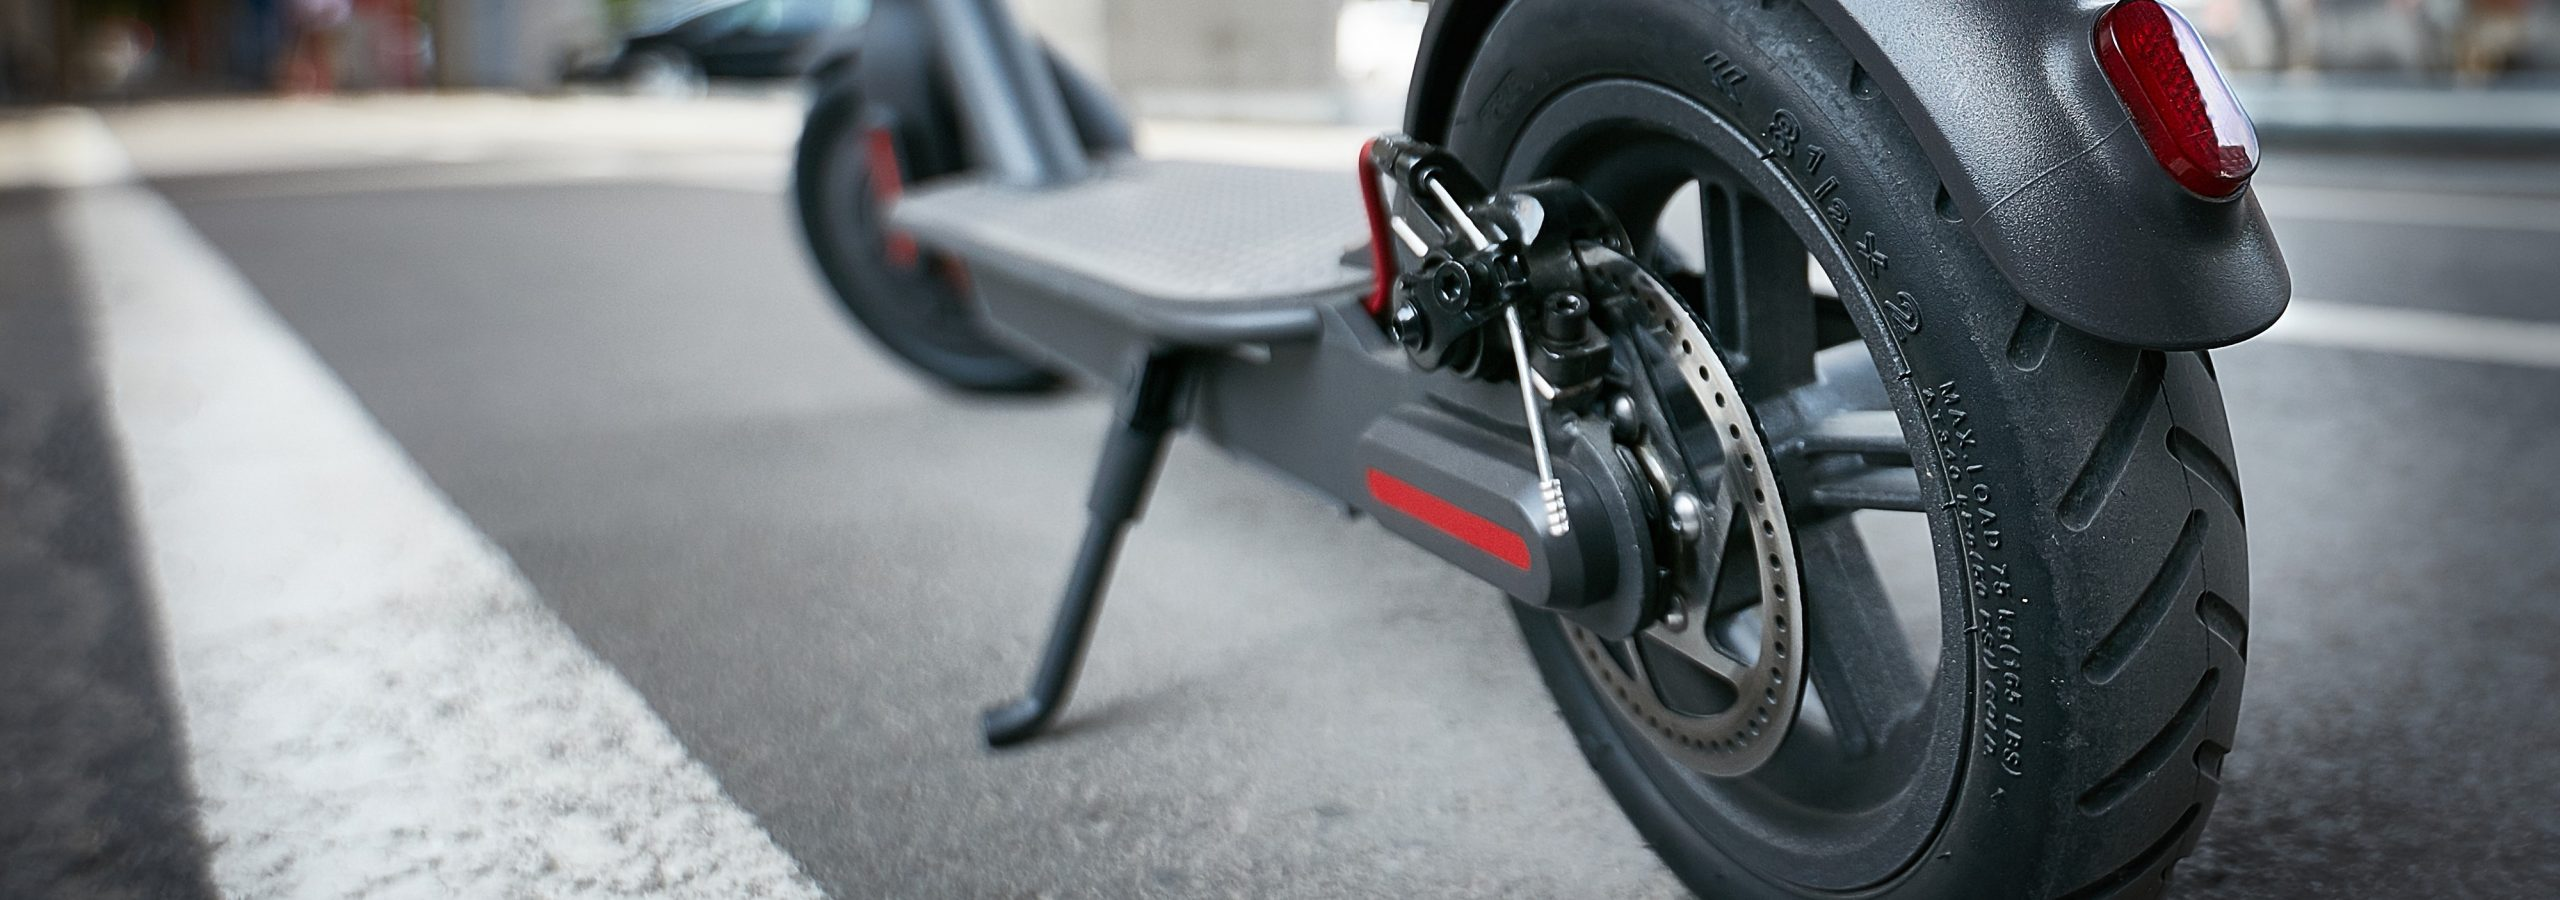 electric scooter rear brake